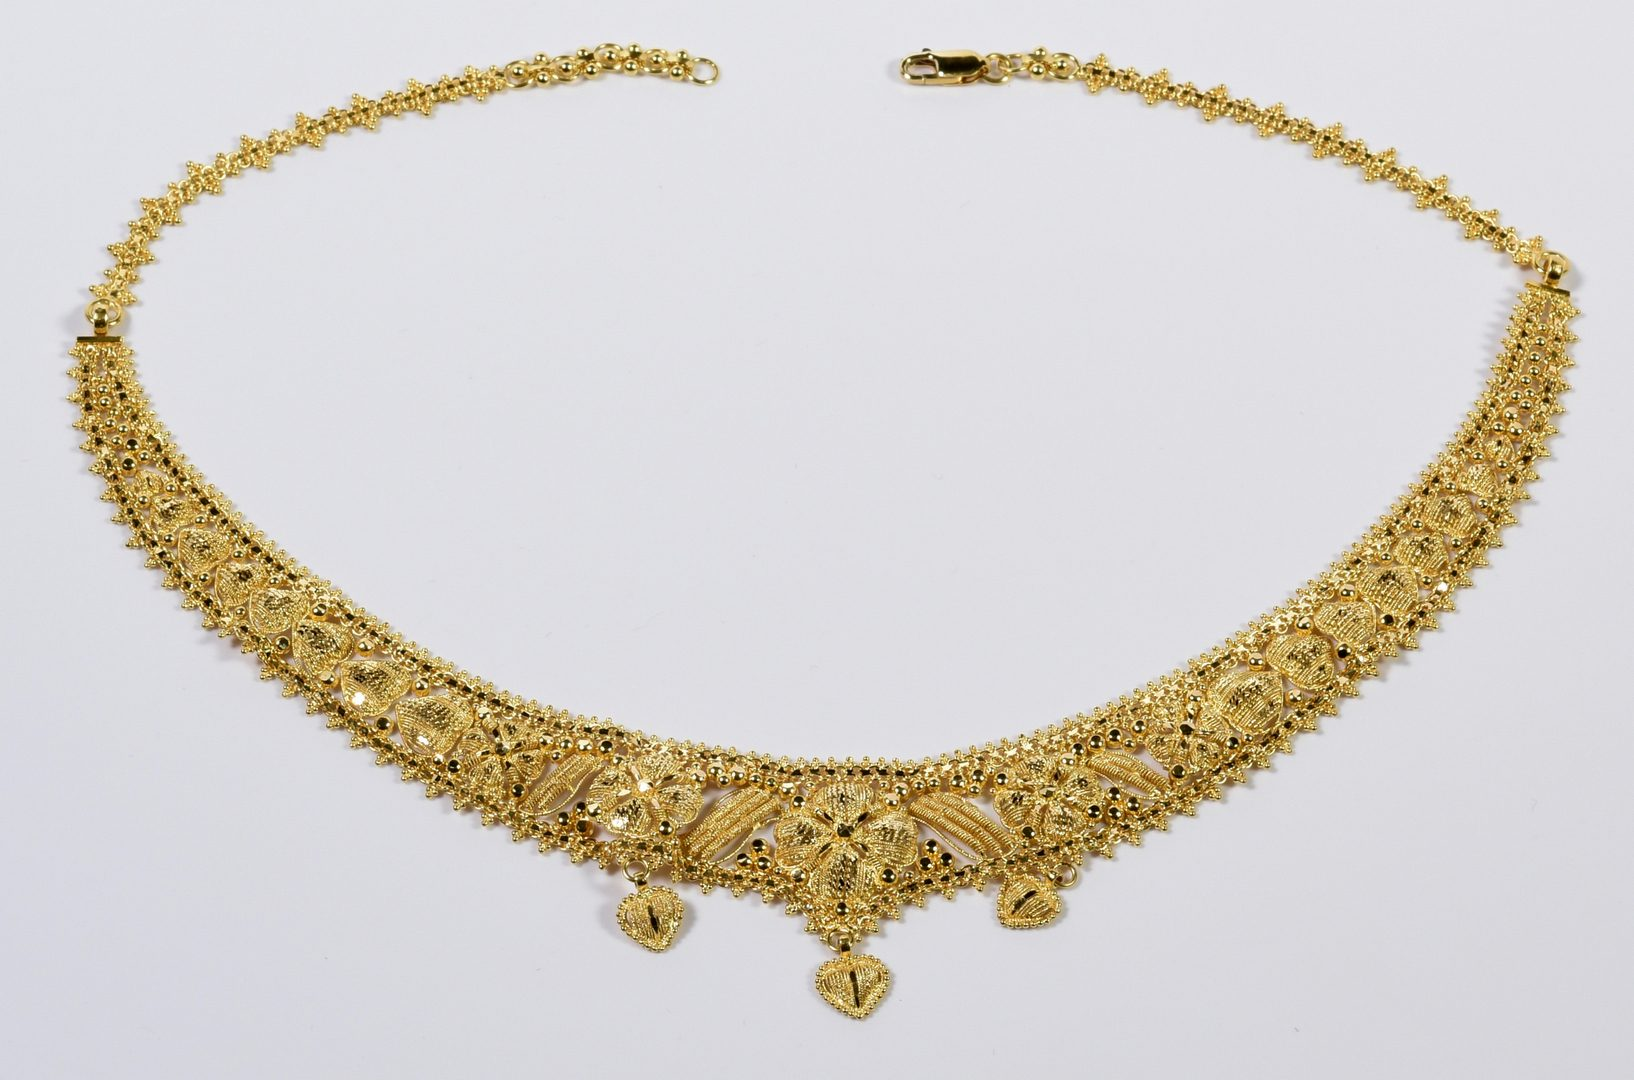 Lot 777: 21K Gold Bib Necklace and Earrings